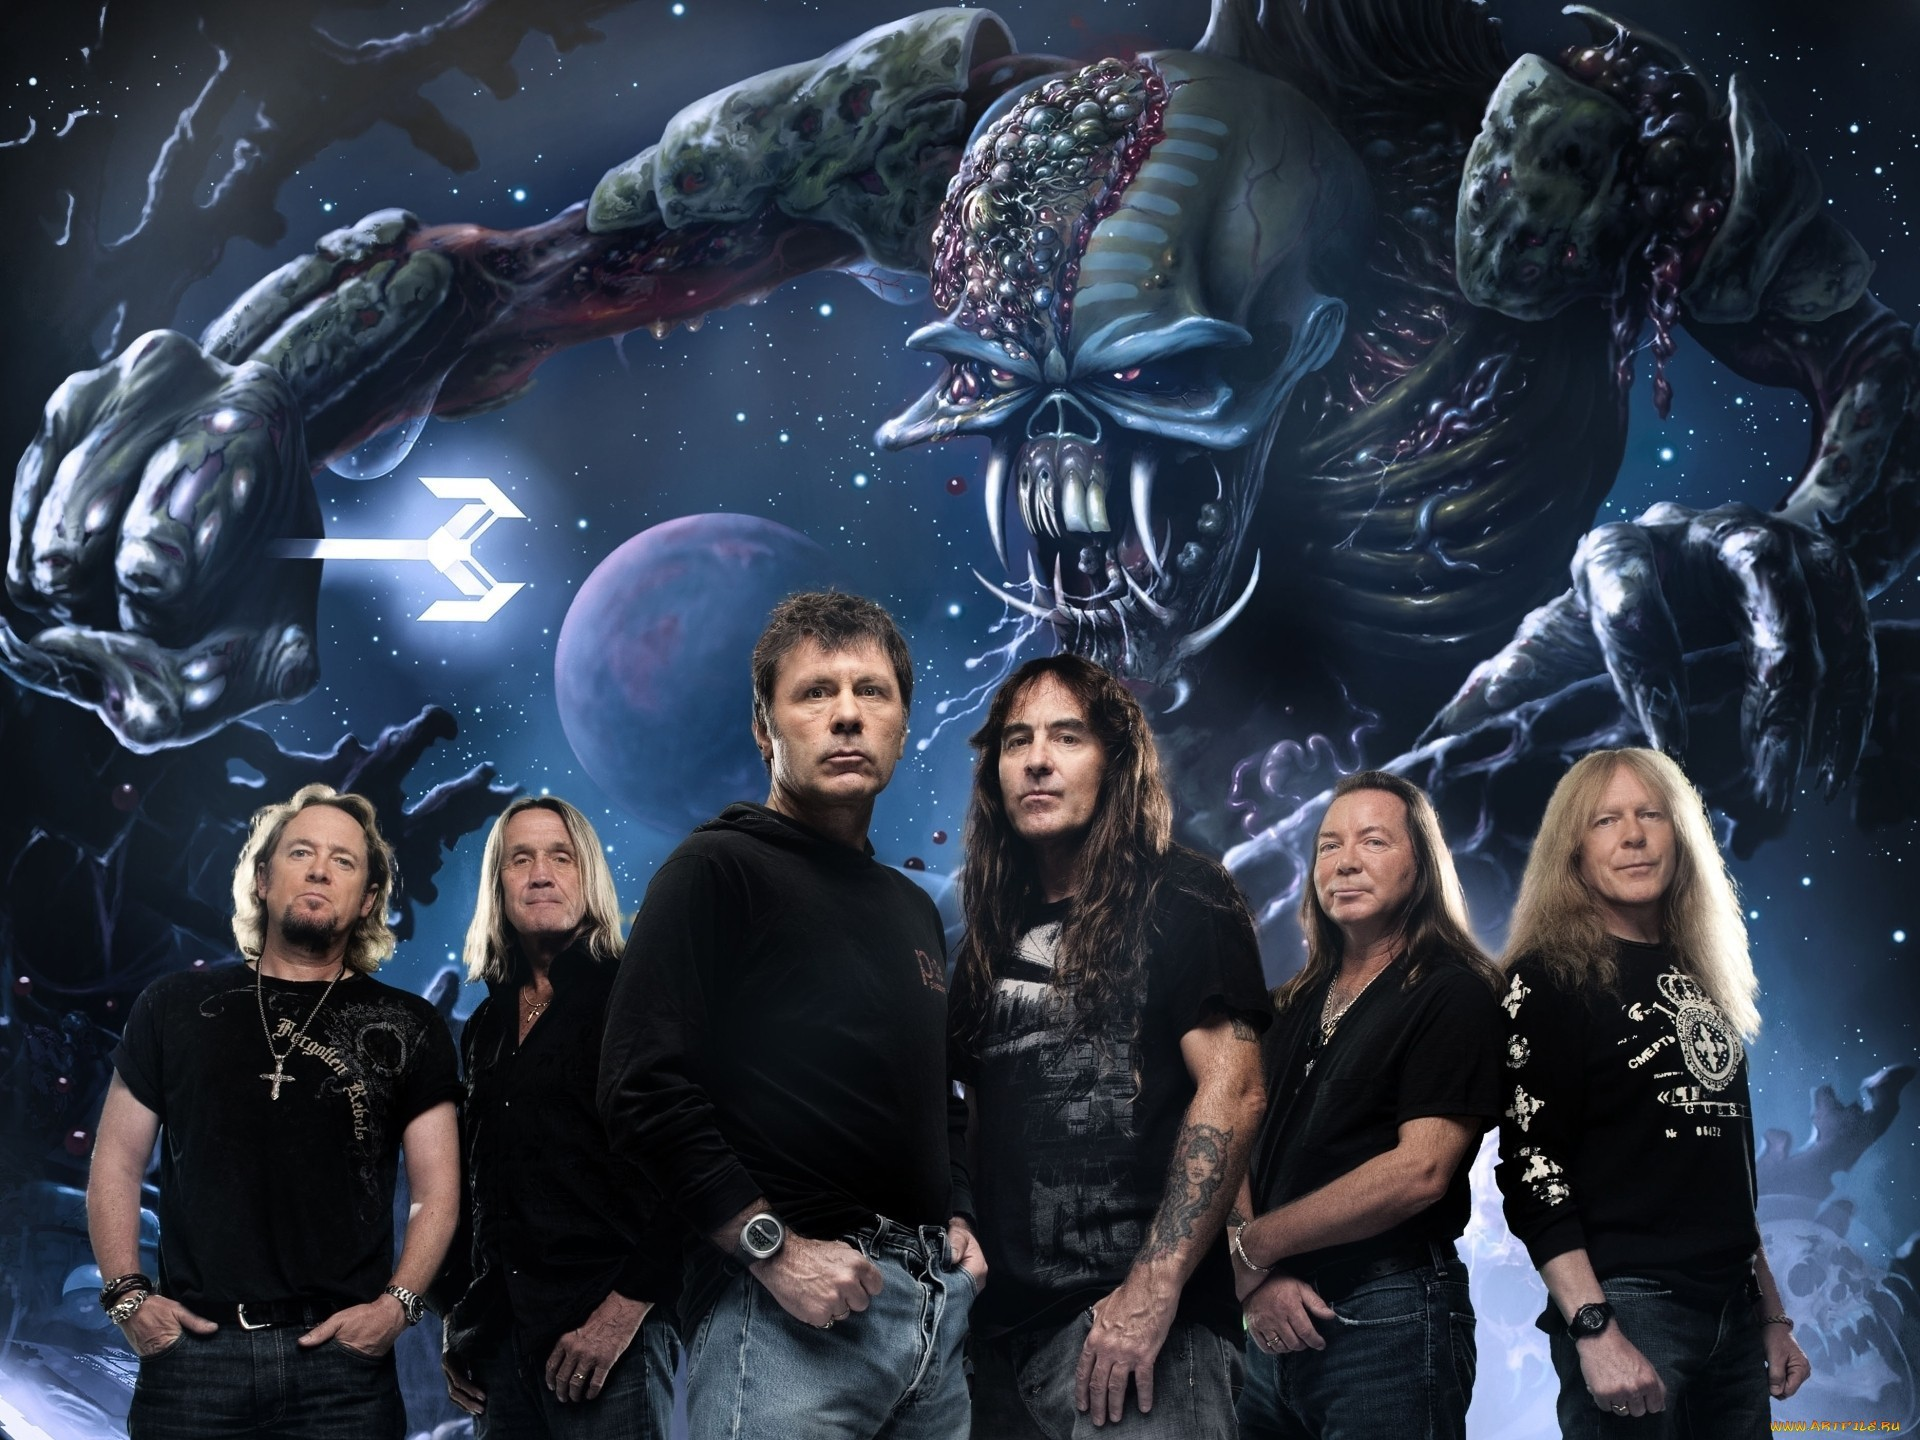 Iron Maiden Wallpaper 1920×1080 – WallpaperSafari